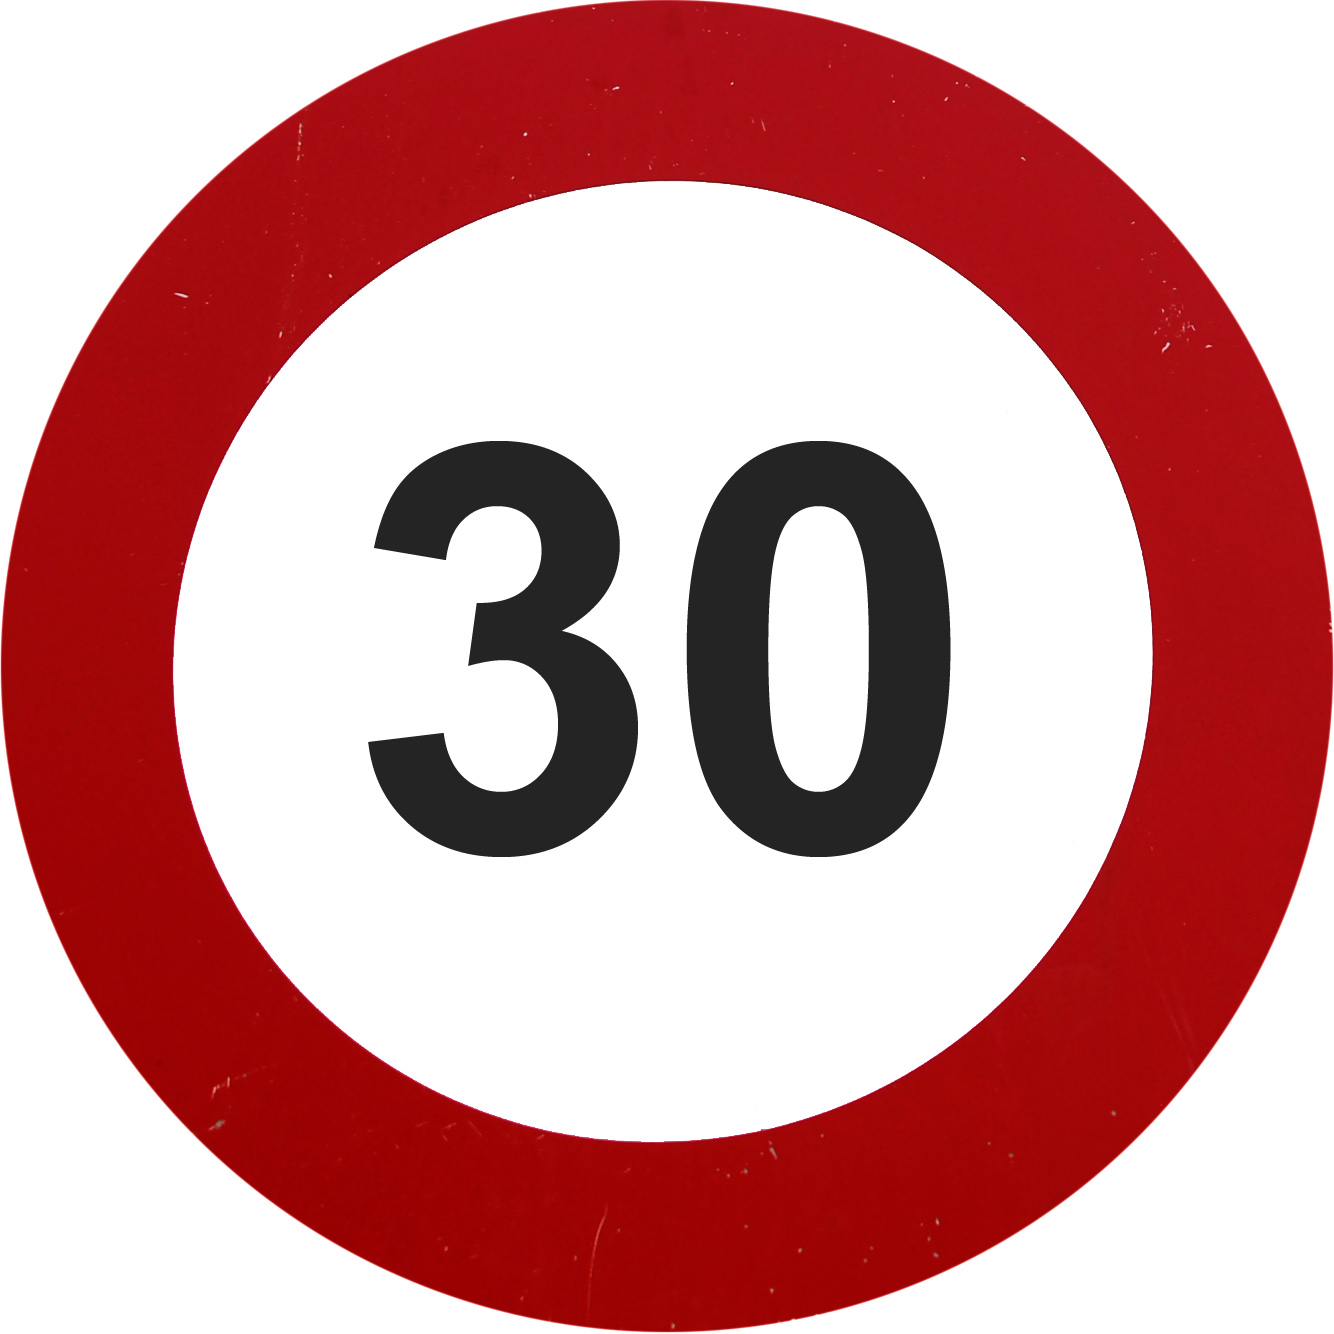 30-speed-limit-round-sign